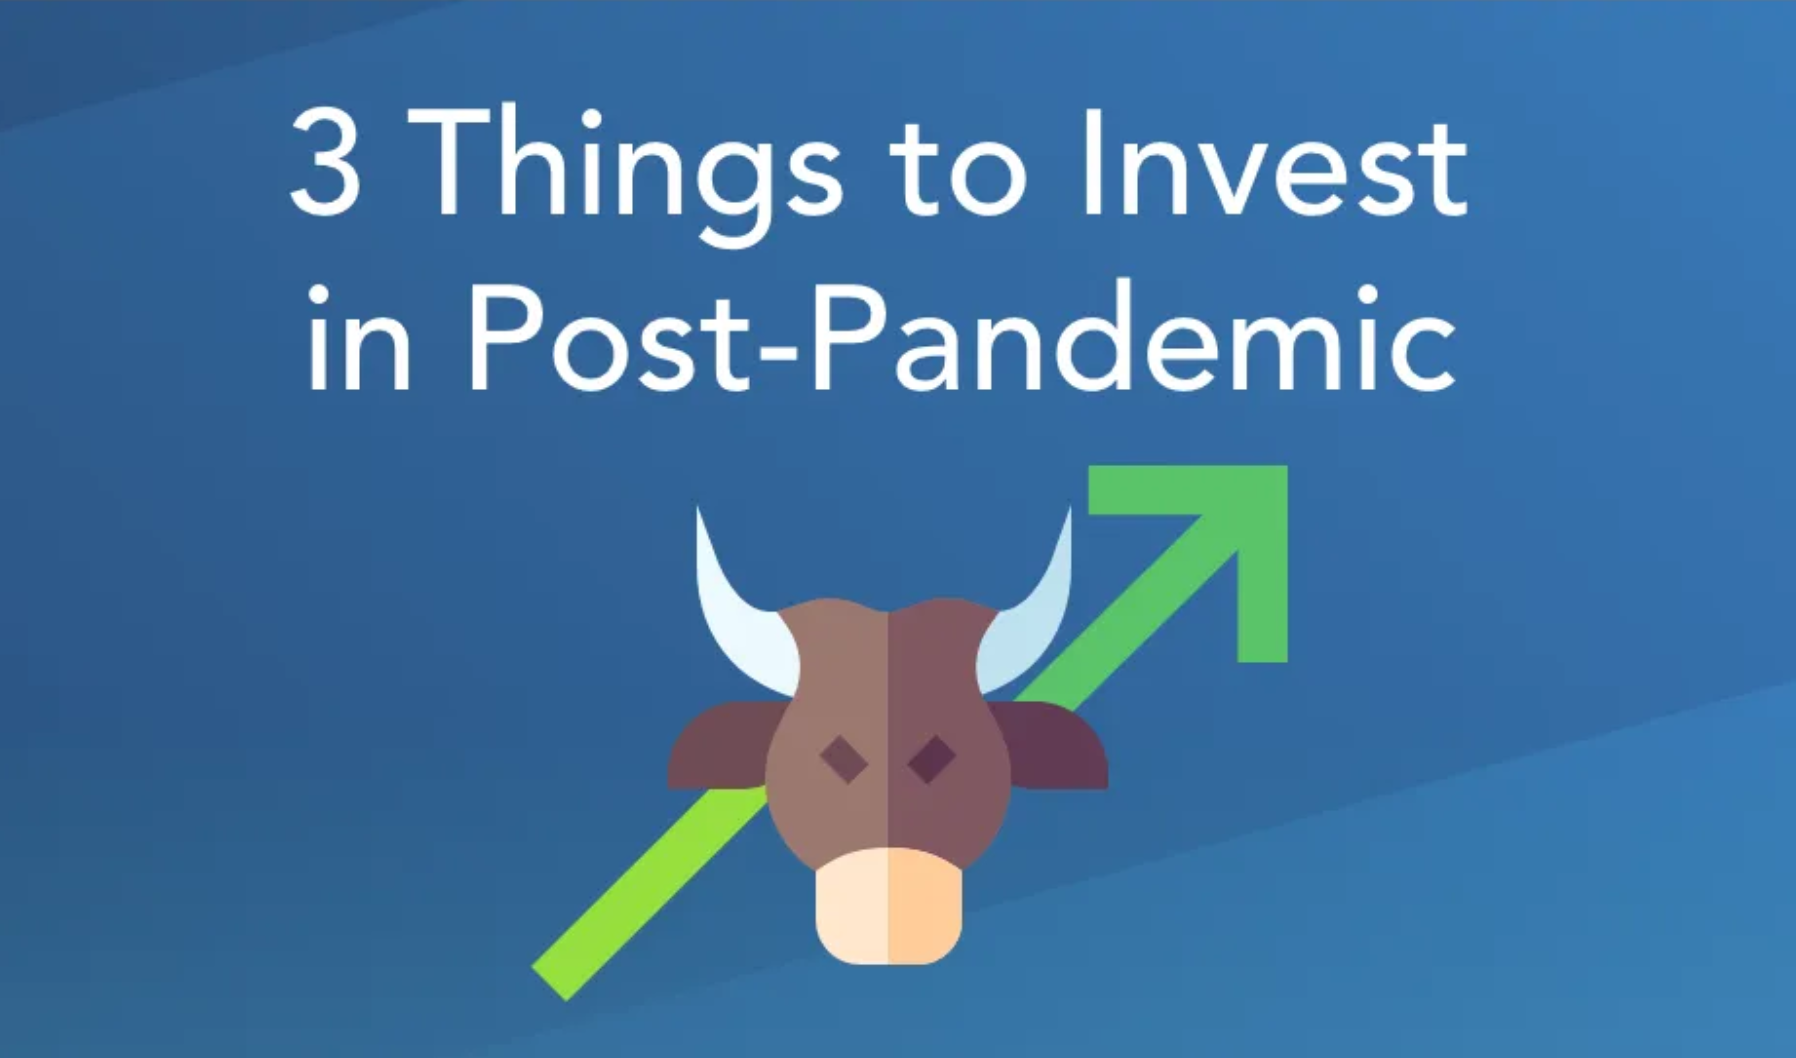 3 investments you should make ASAP to get ready for the post-pandemic era